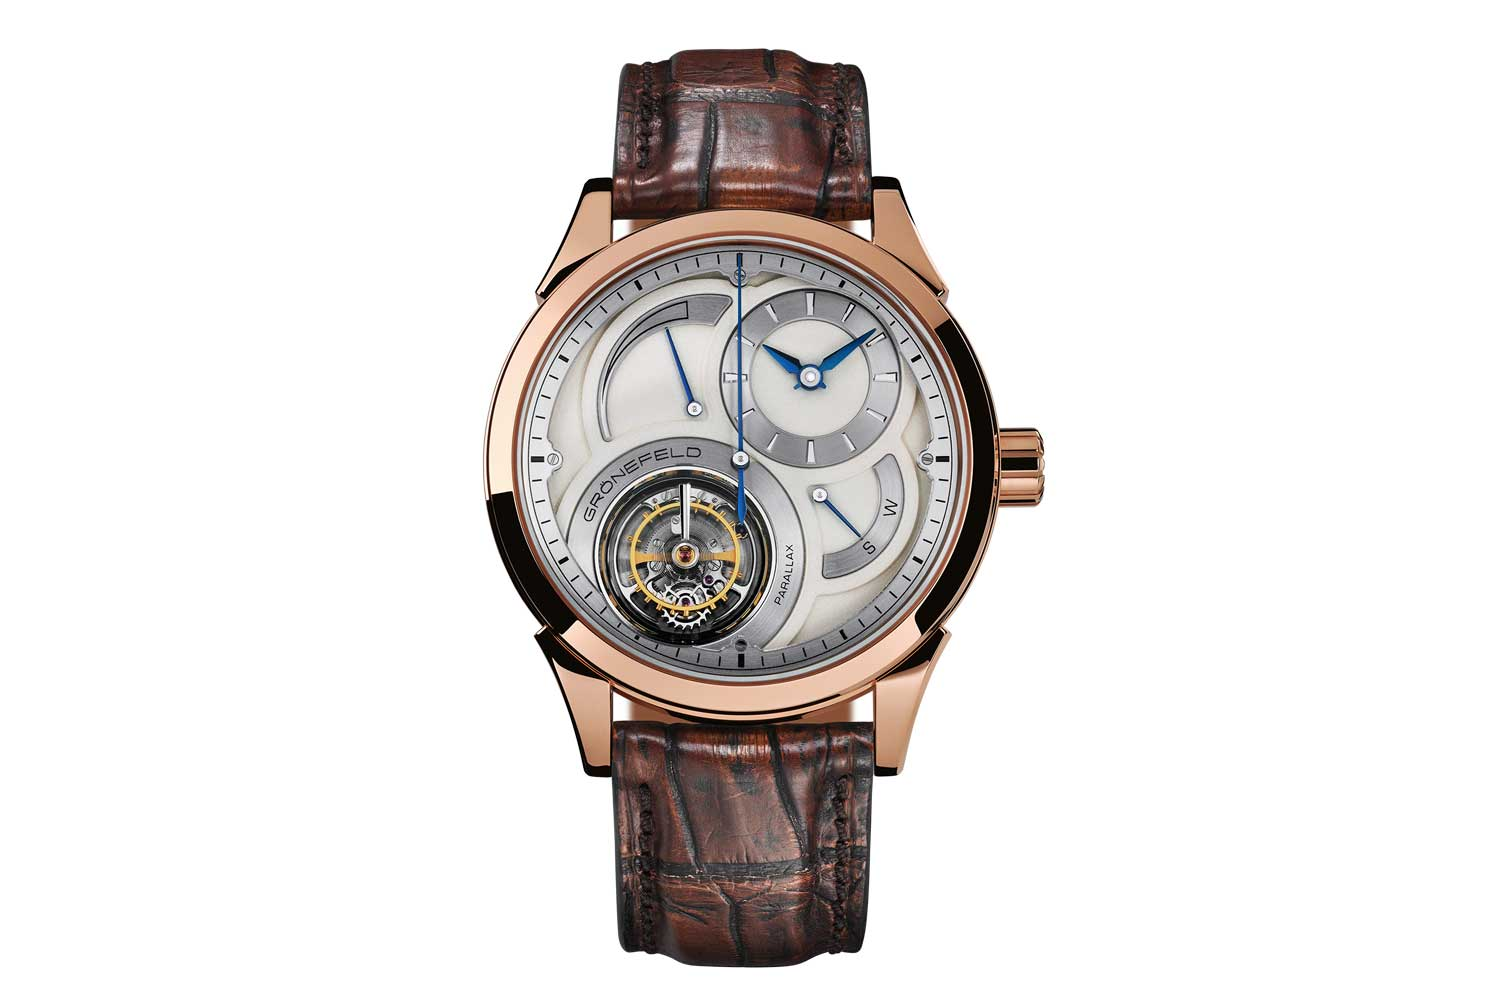 """The Grönefeld Parallax tourbillon features a """"flying"""" tourbillon with a large central seconds hand, stop seconds, power reserve indicator (Image: Grönefeld)"""